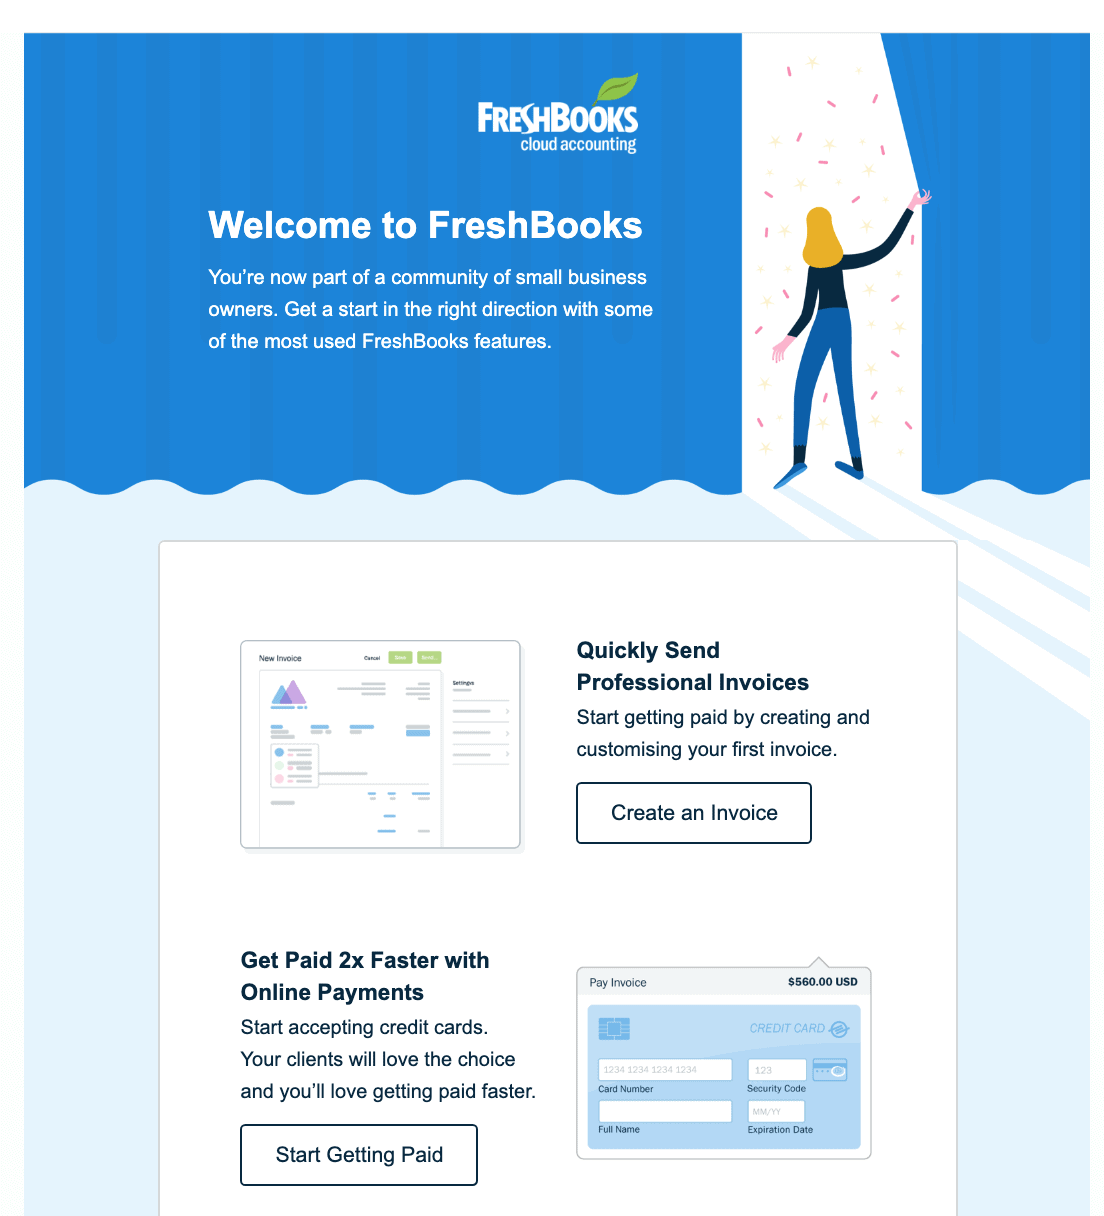 The welcome page of FreshBooks software